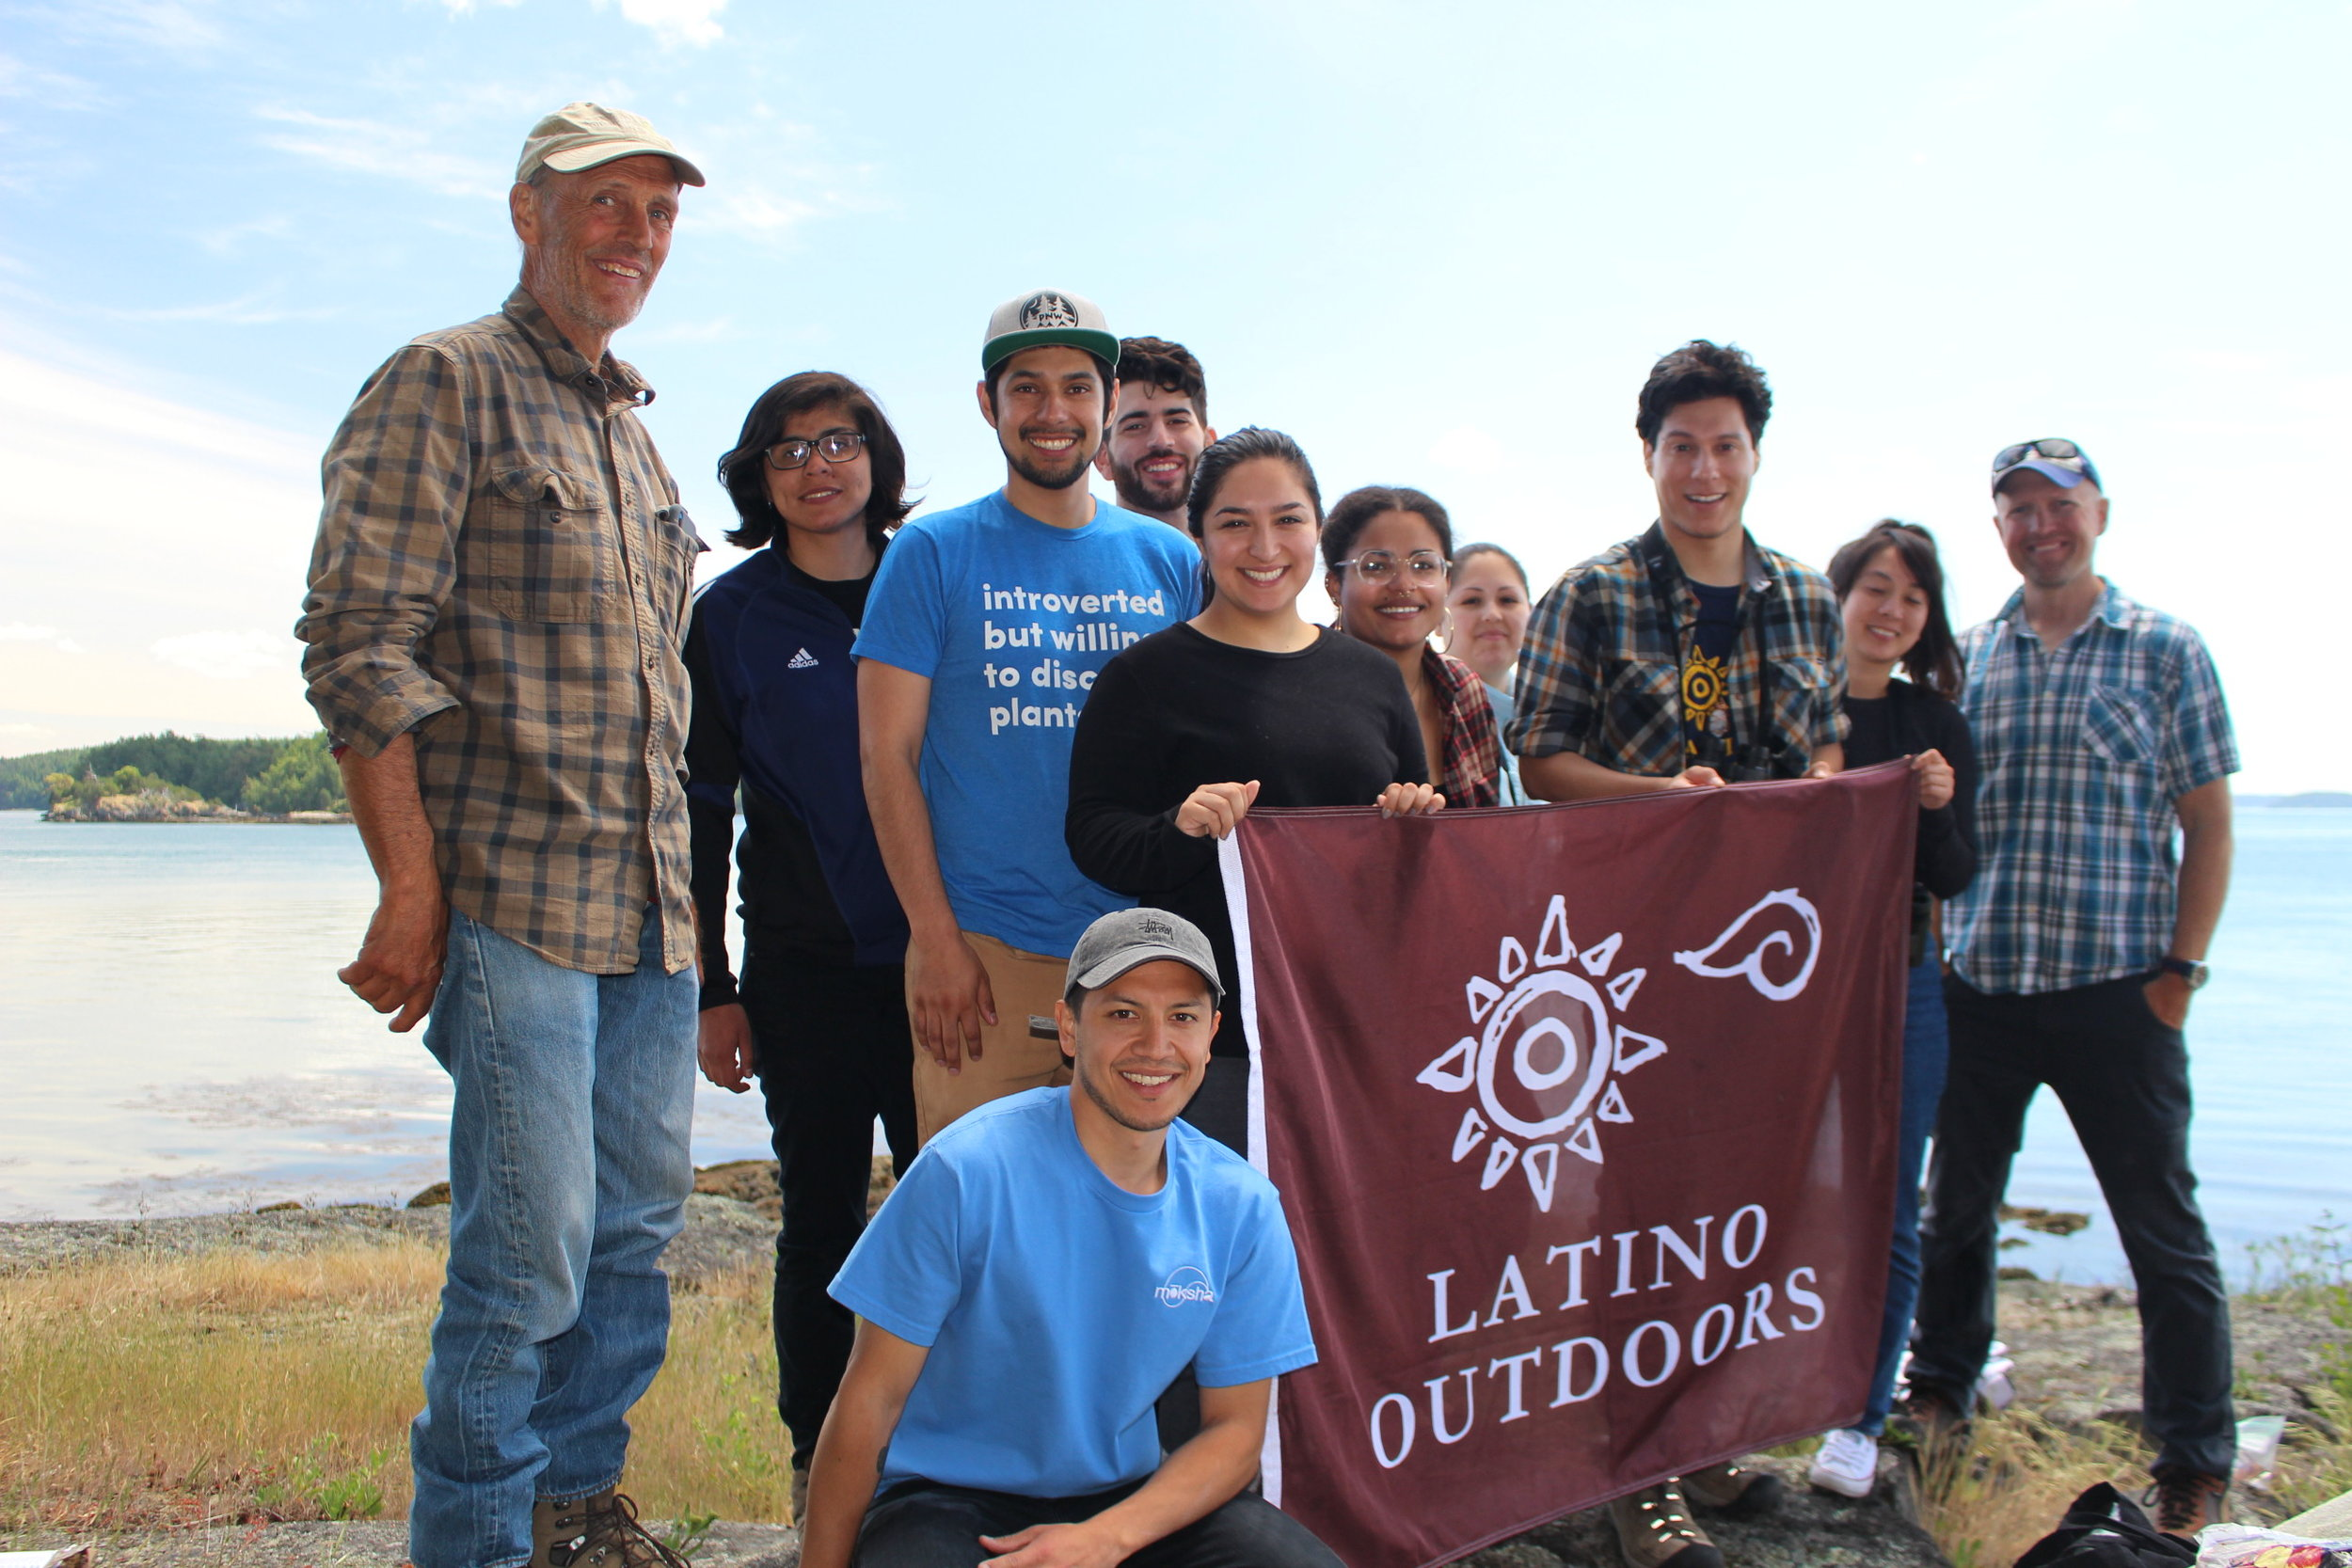 Latino Outdoors group on Yellow Island.